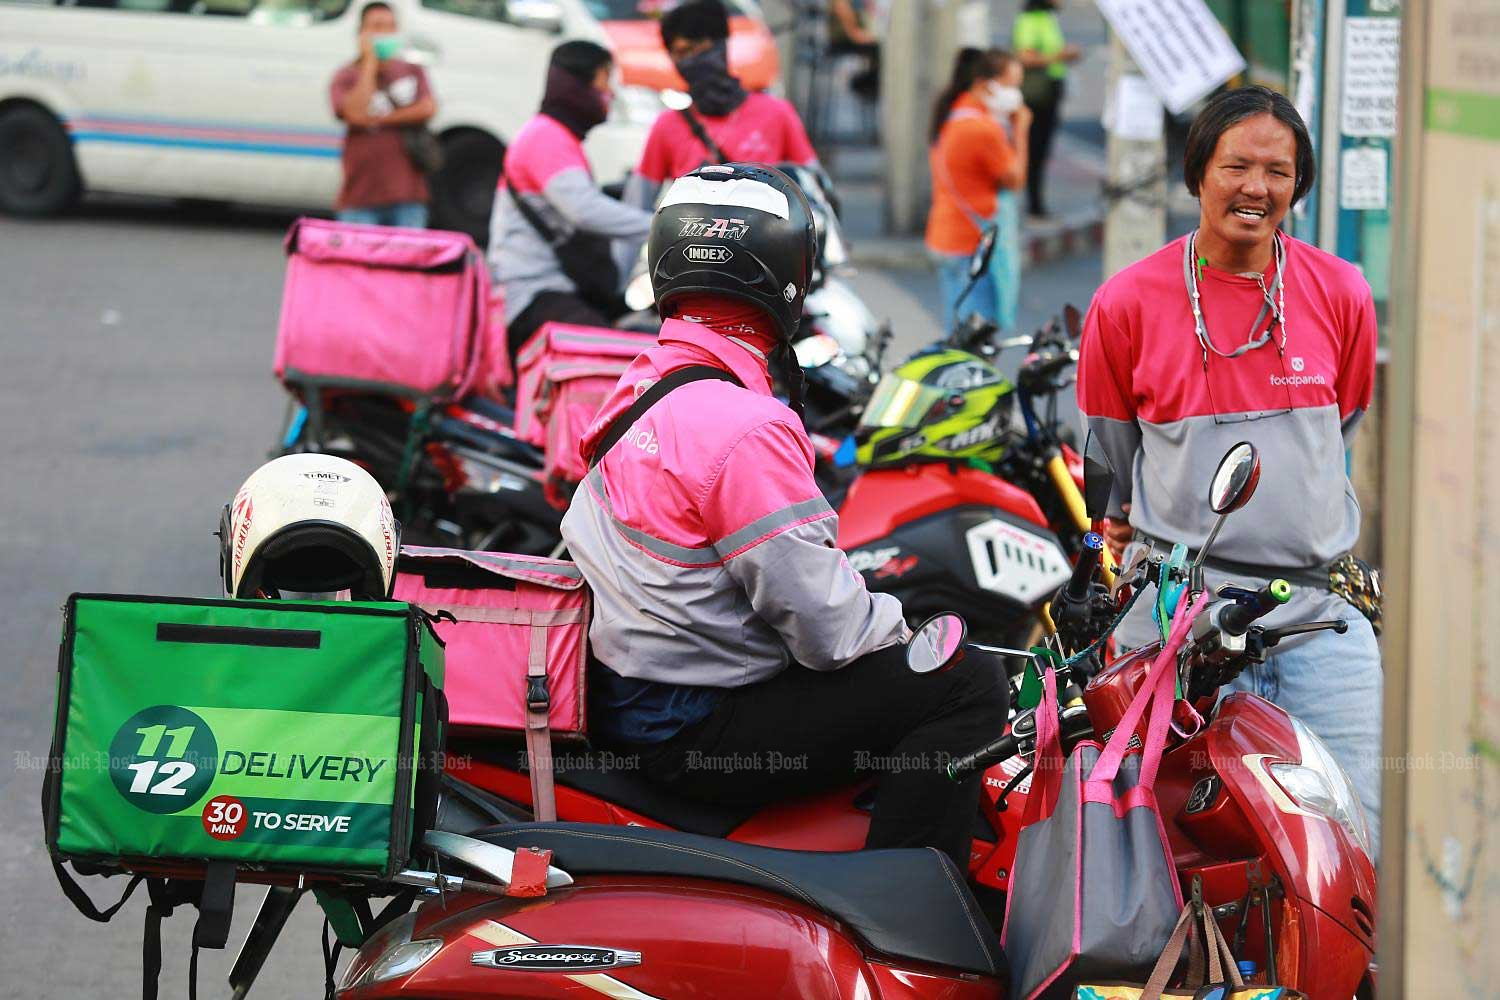 Online food delivery drivers have seen increased food delivery orders amid the surge in Covid-19 cases across the country.(Photo by Somchai Poomlard)